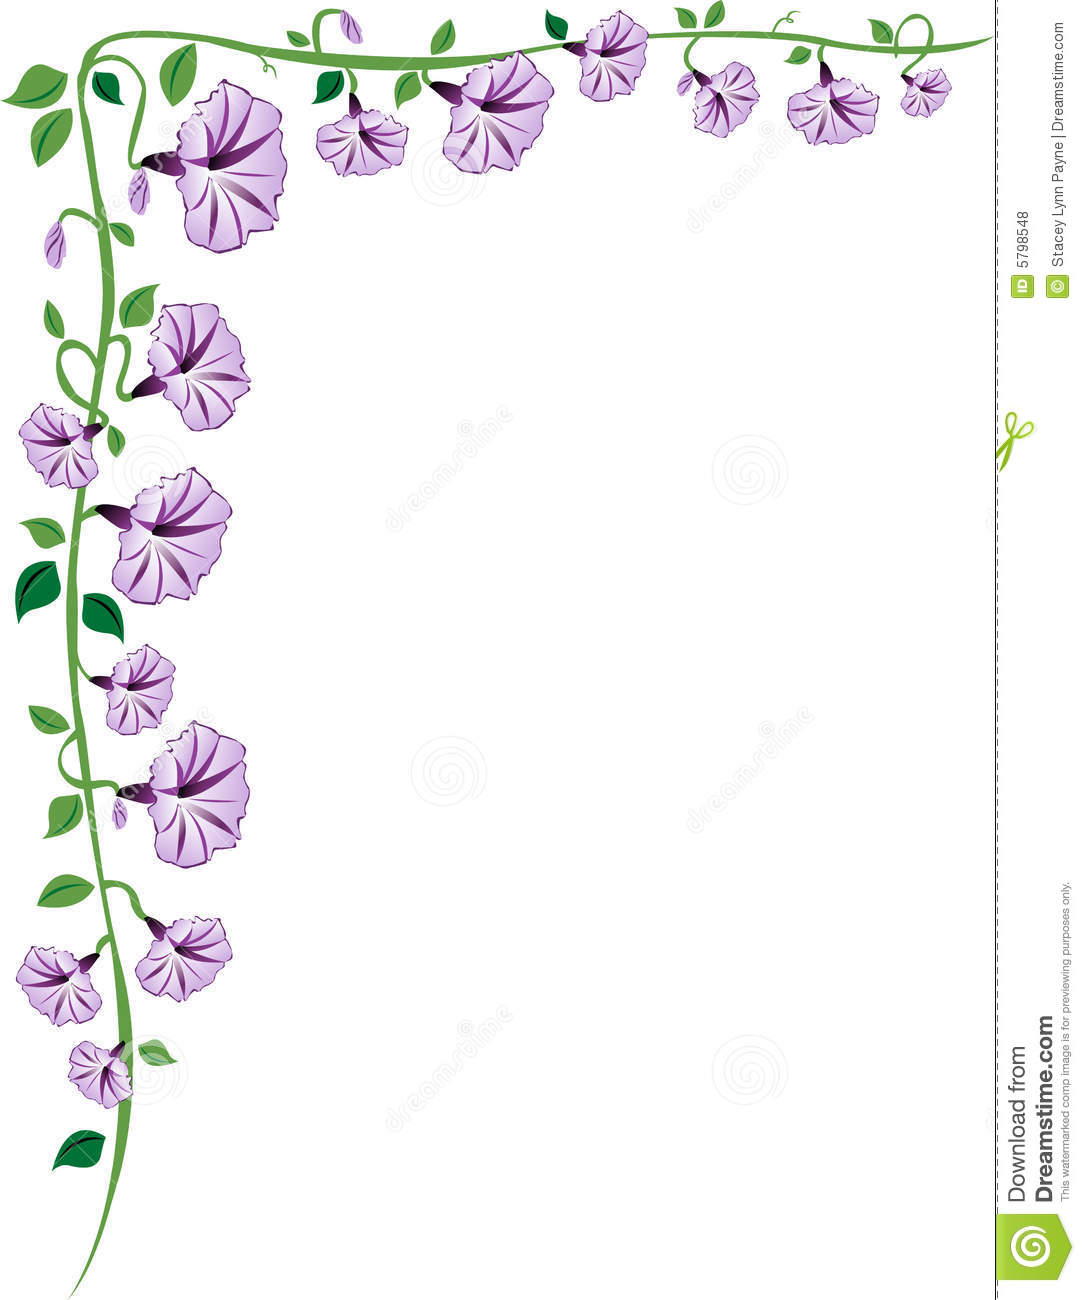 Morning Glory Vine Border Purple Royalty Free Stock Photos   Image